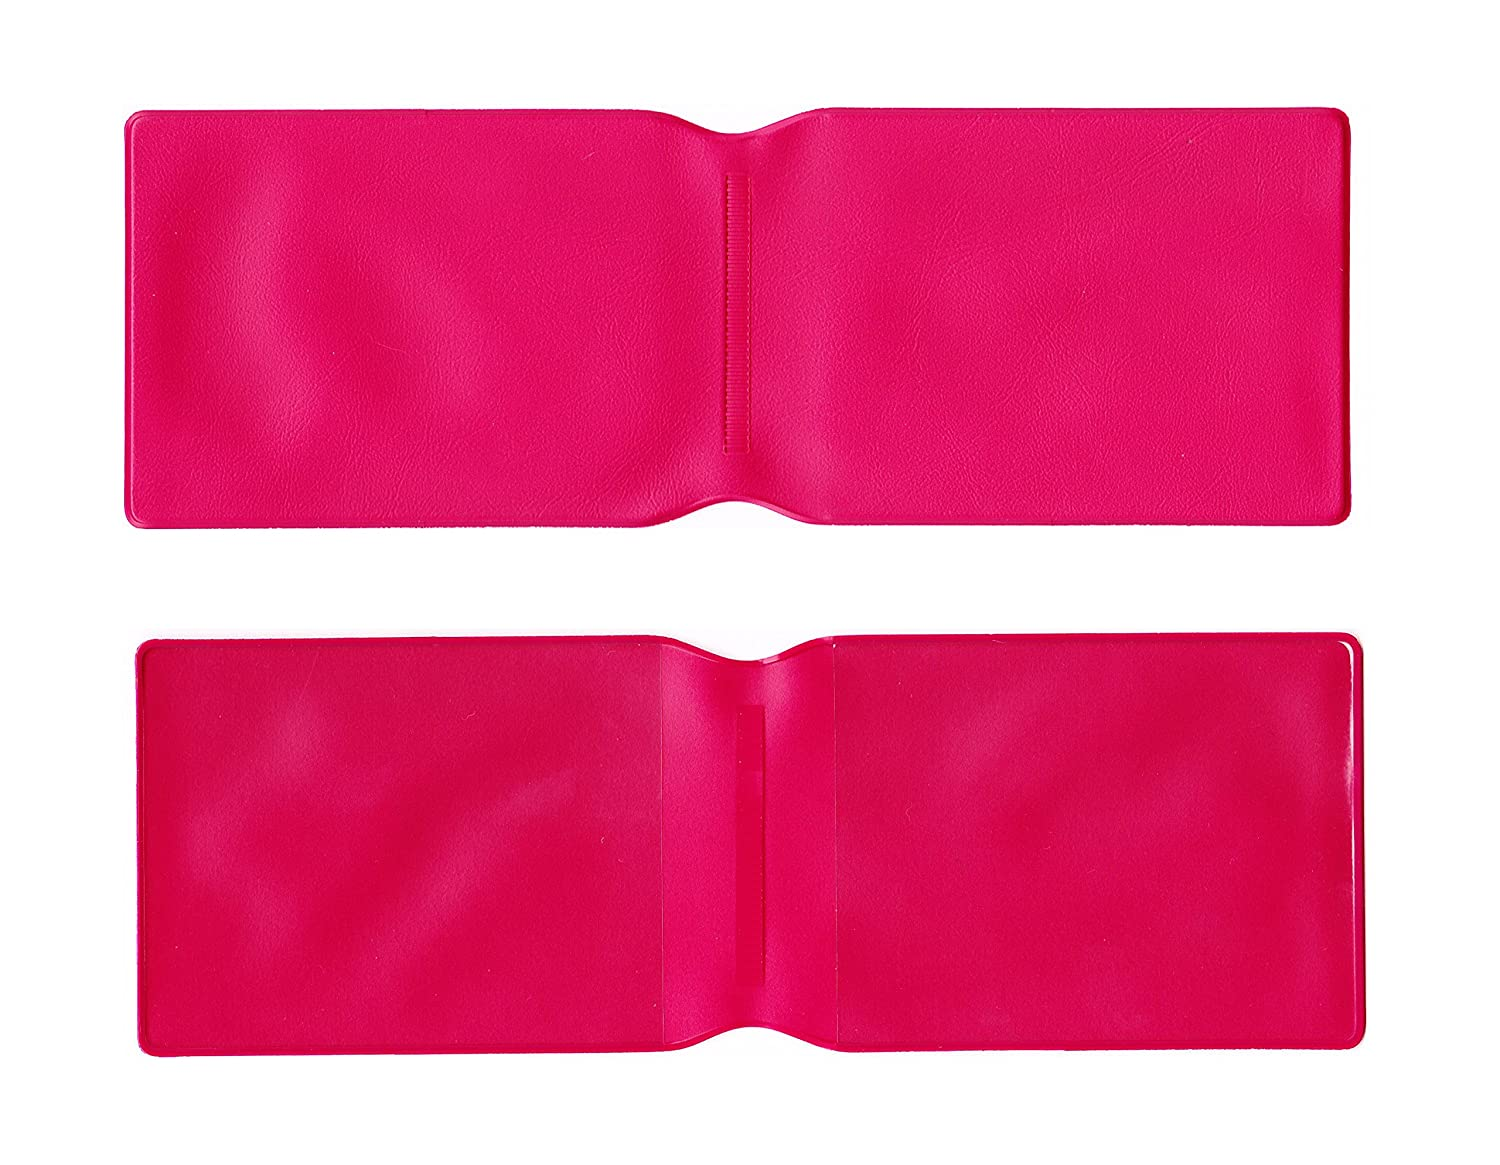 1 x Dark Pink Plastic Oyster Card Wallet / Credit Card Holder / ID Card Wallet / Business Card Holder / Travel Pass Cover - MADE IN THE UK